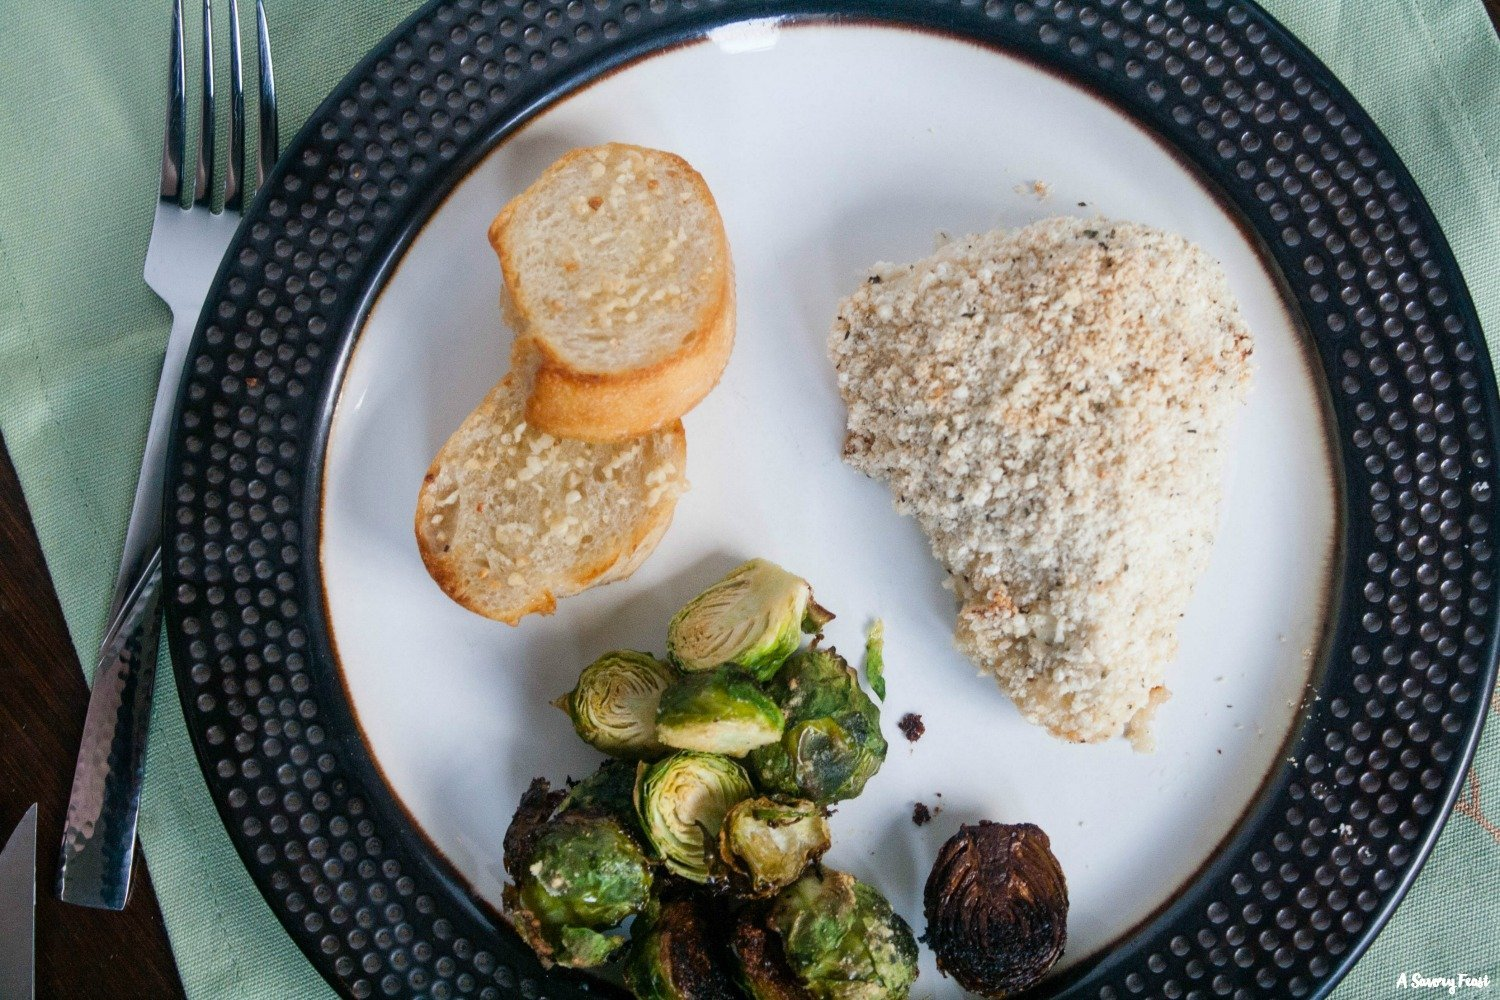 Easy 30 minute dinner recipe: Greek Yogurt Parmesan Crusted Chicken